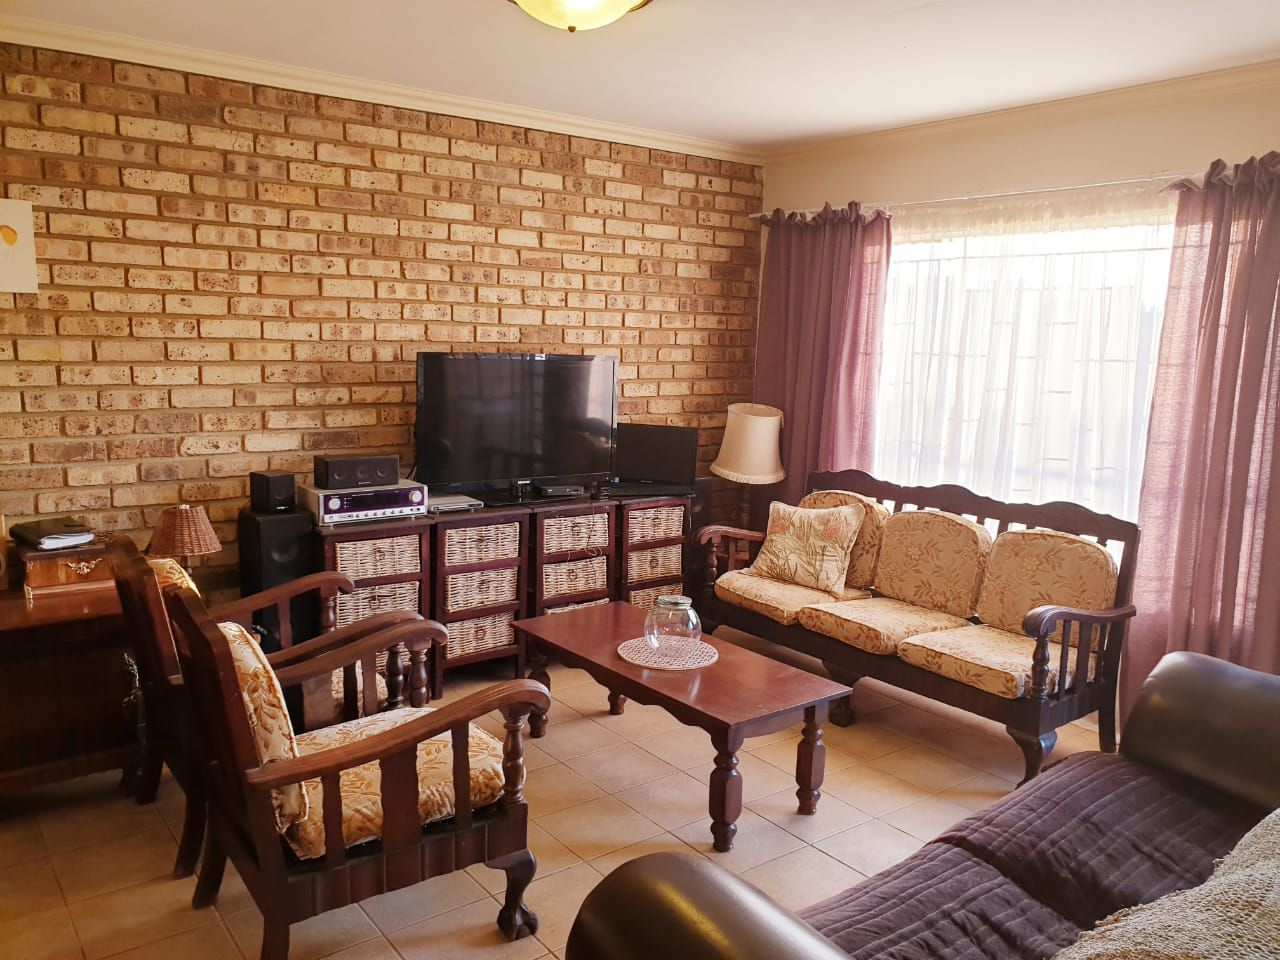 Apartment in Bailliepark - WhatsApp Image 2019-08-27 at 12.41.52.jpeg